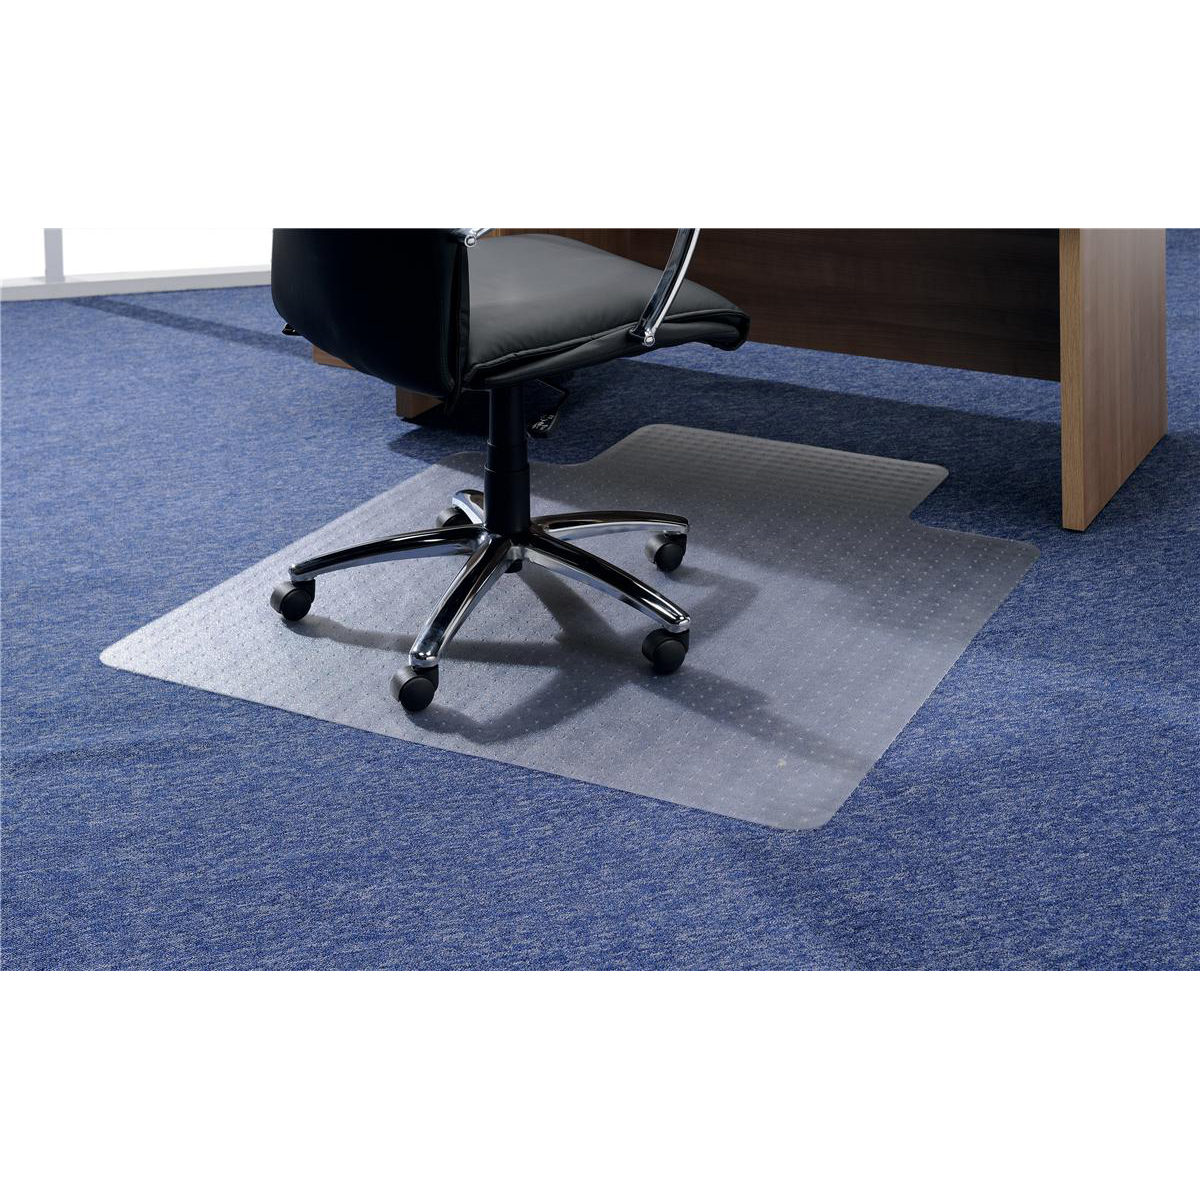 5 Star Office Chair Mat Hard Floor Protection PVC W900xD1200mm Clear Transpar